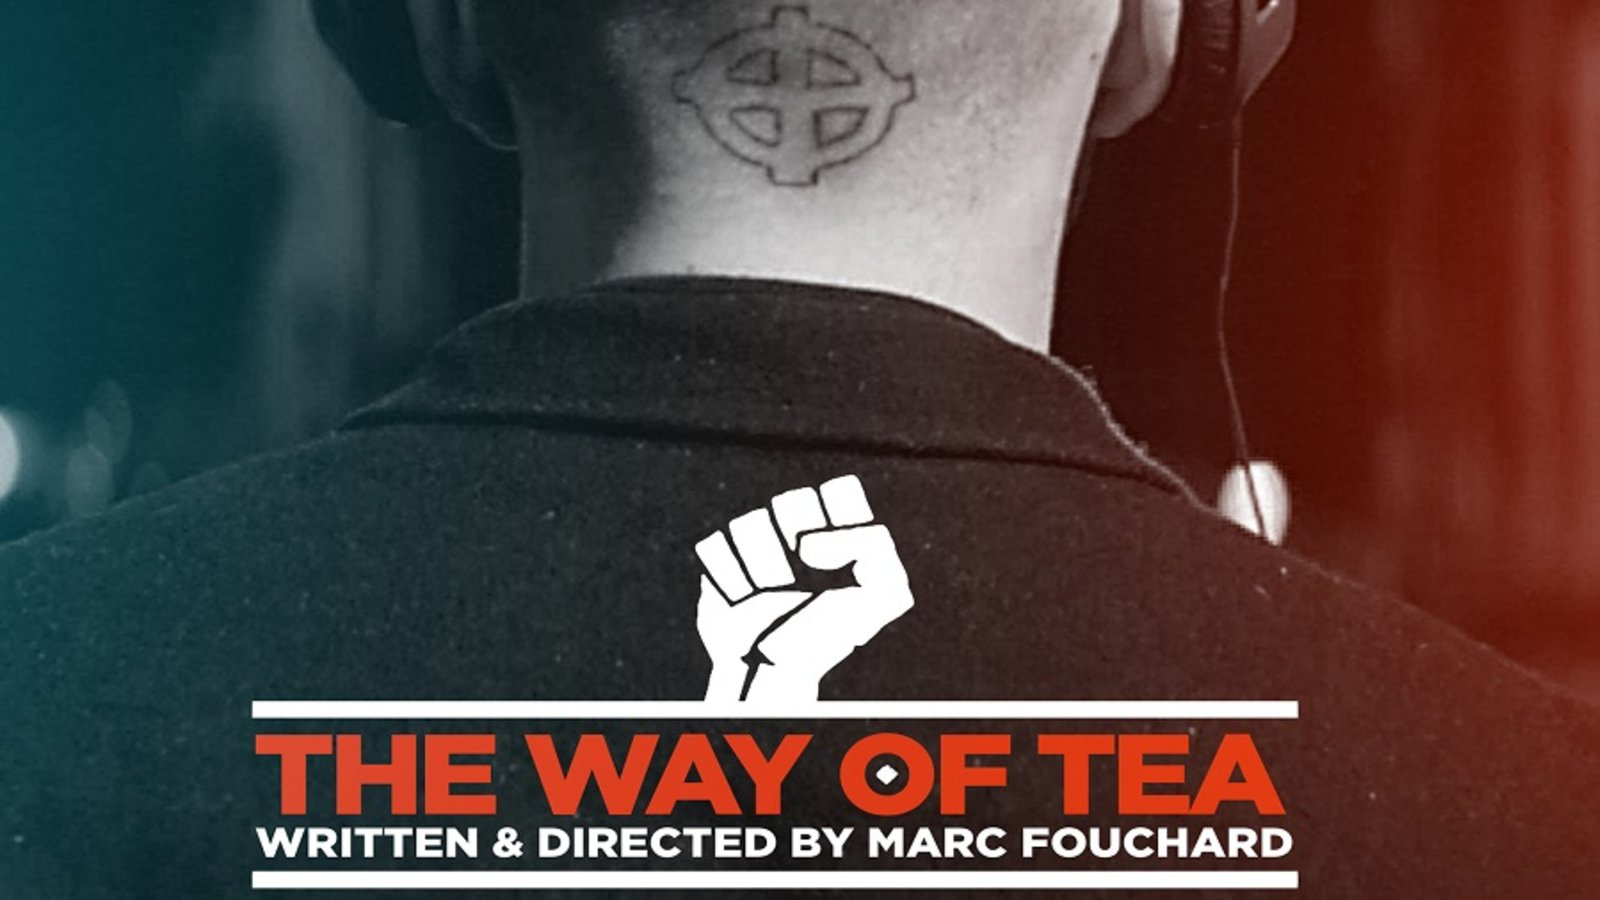 The Way of Tea - Les frémissements du thé